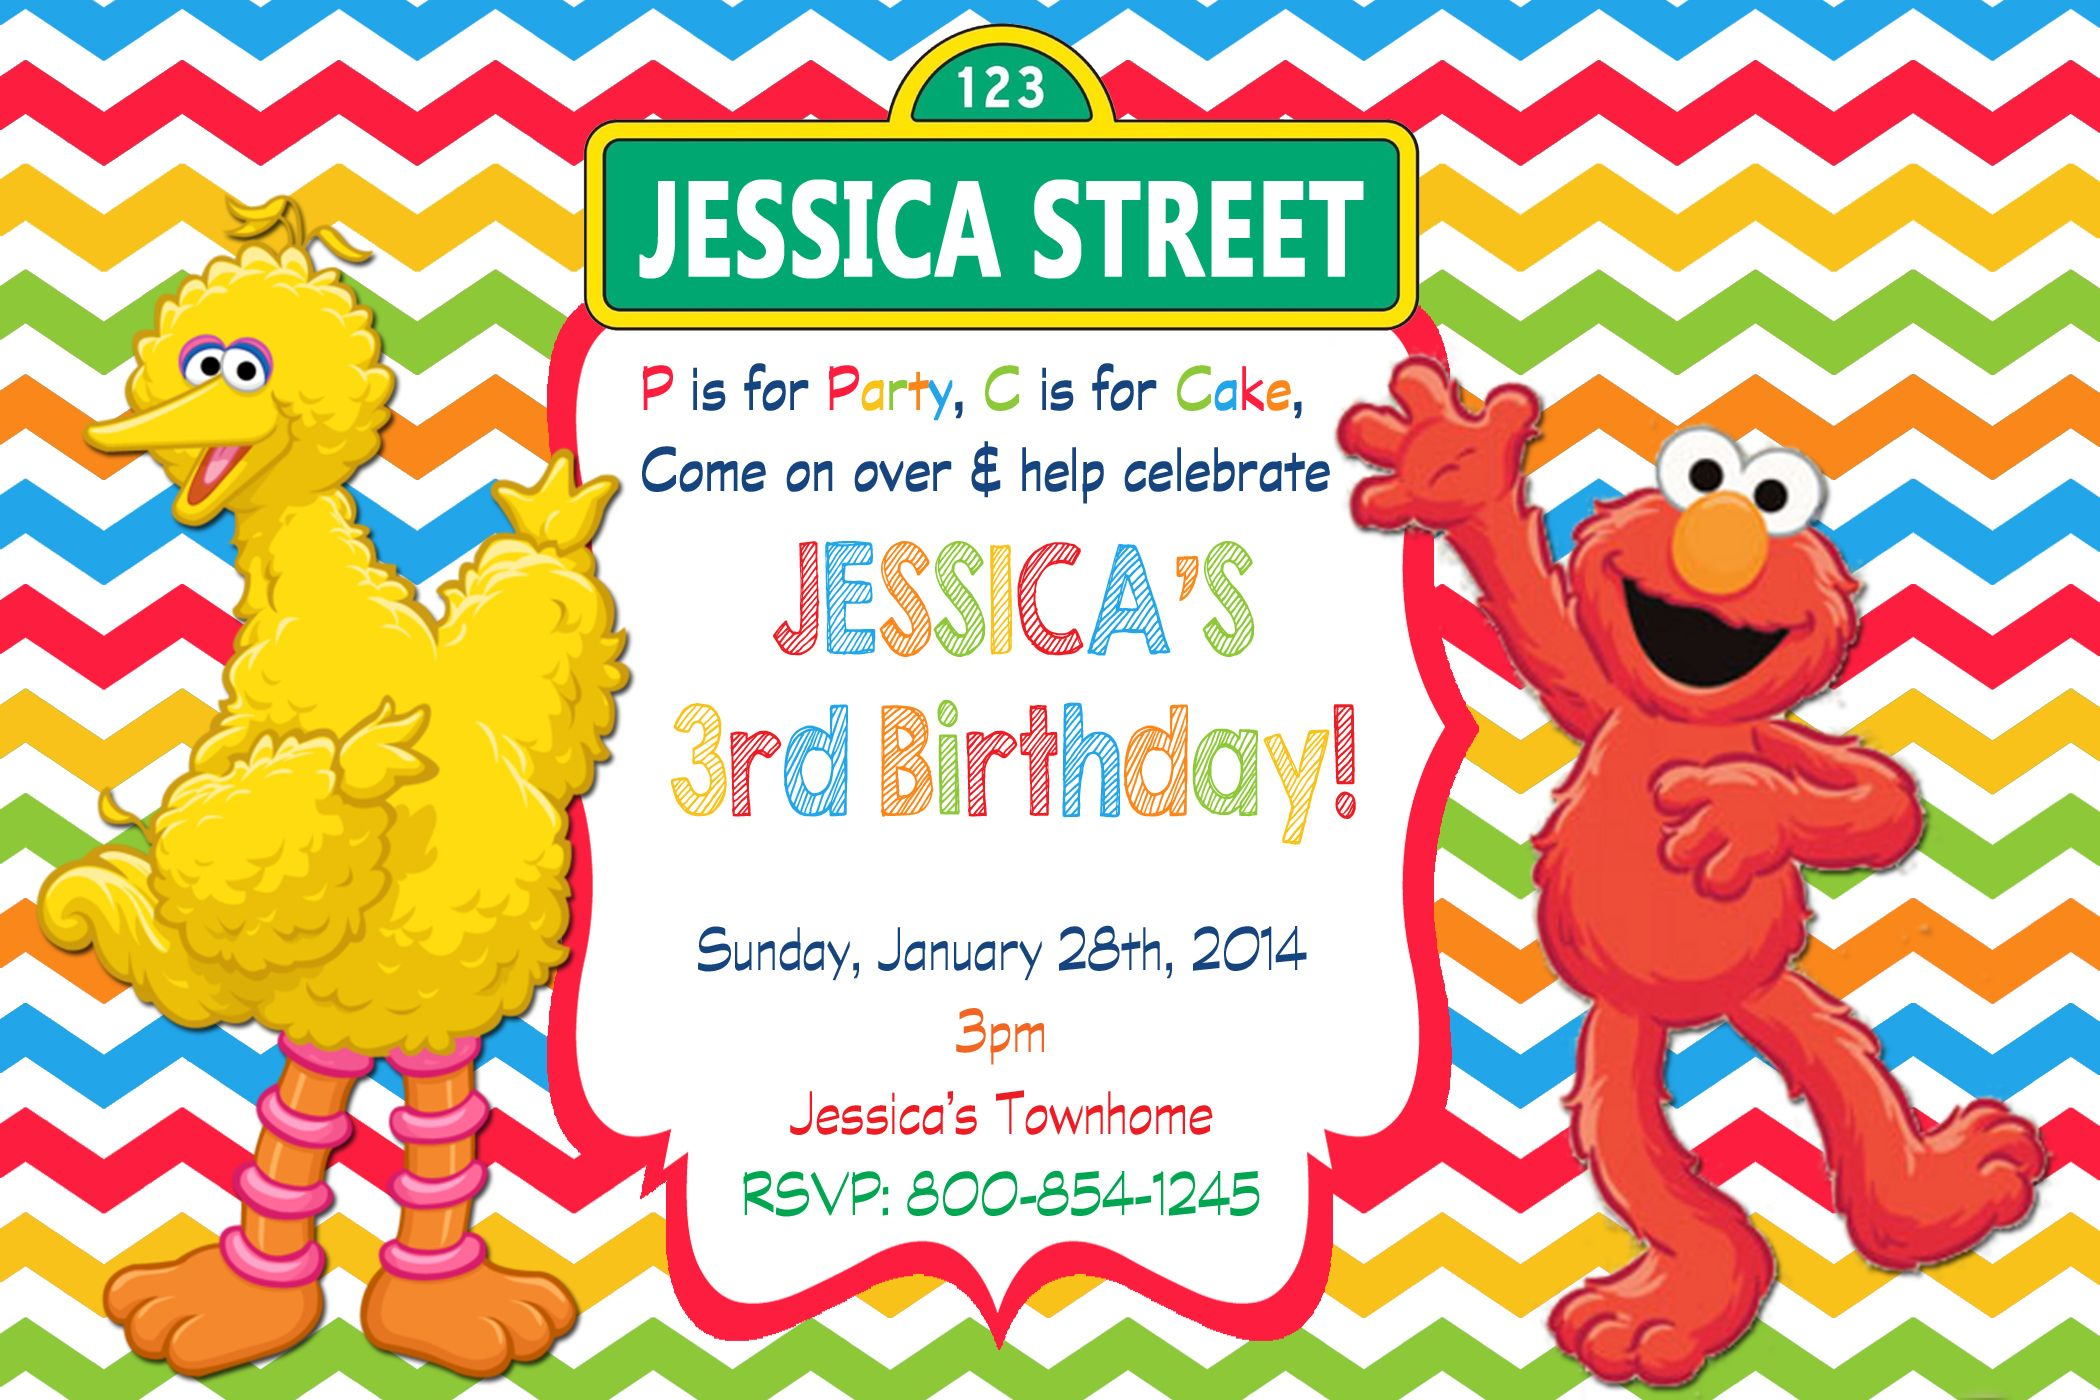 Party Express Invitations Sesame Street Birthday Invitations Sesame Street Birthday Party Invitation Sesame Street Birthday